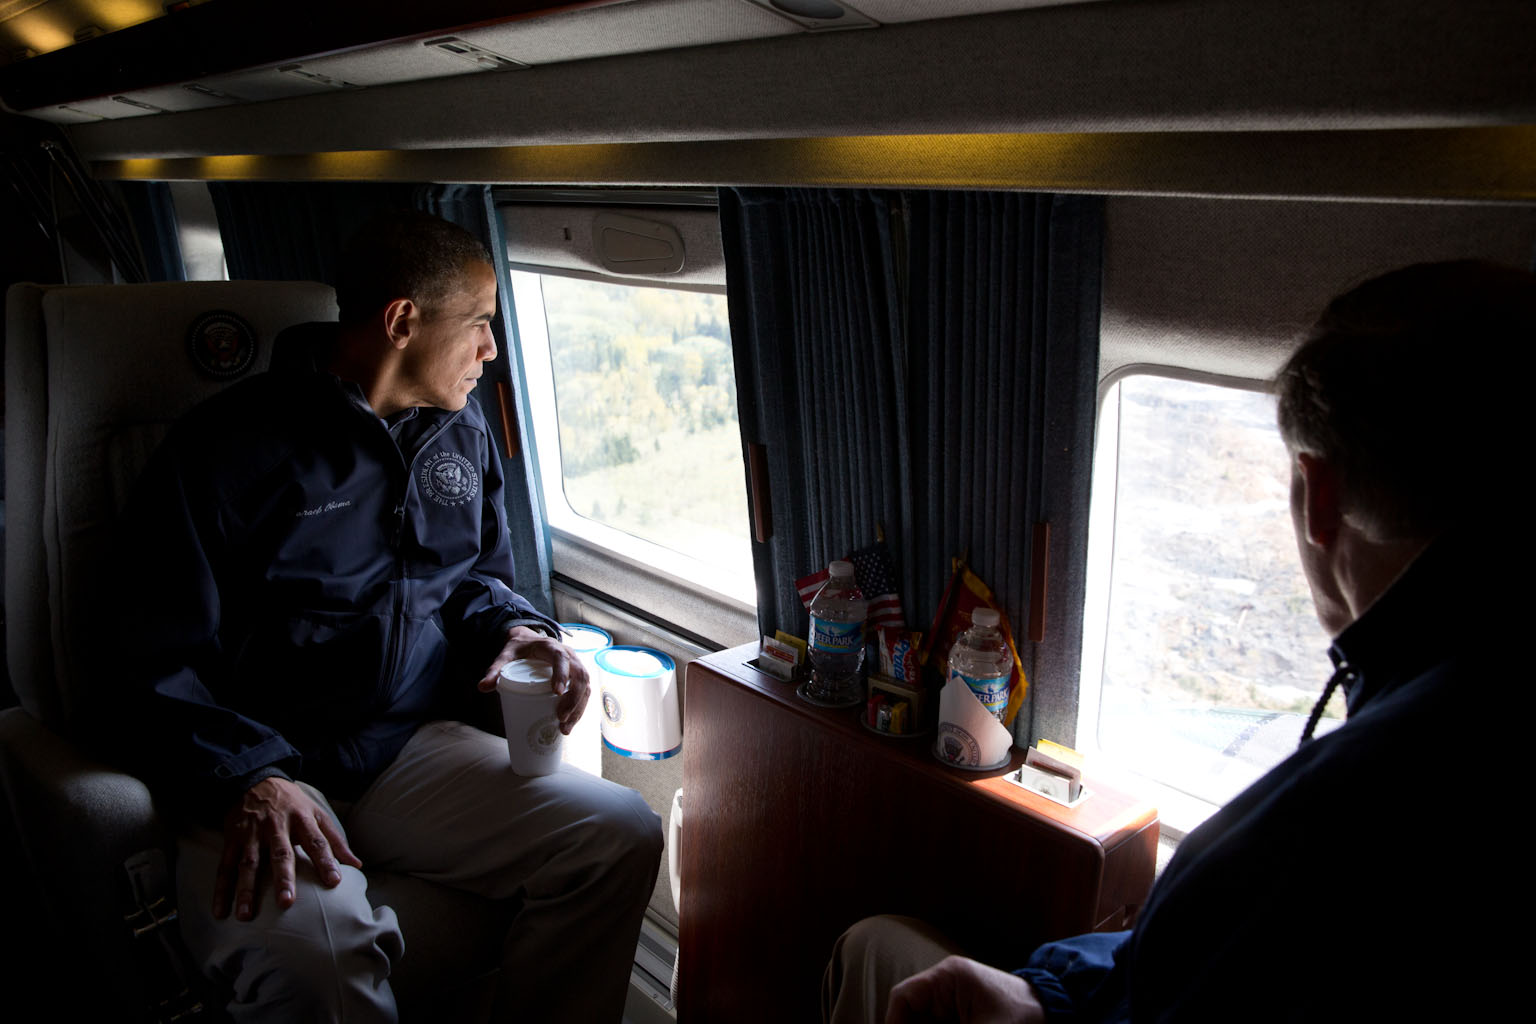 President Barack Obama and Washington Gov. Jay Inslee view the mudslide damage from Marine One, in Oso, Wash